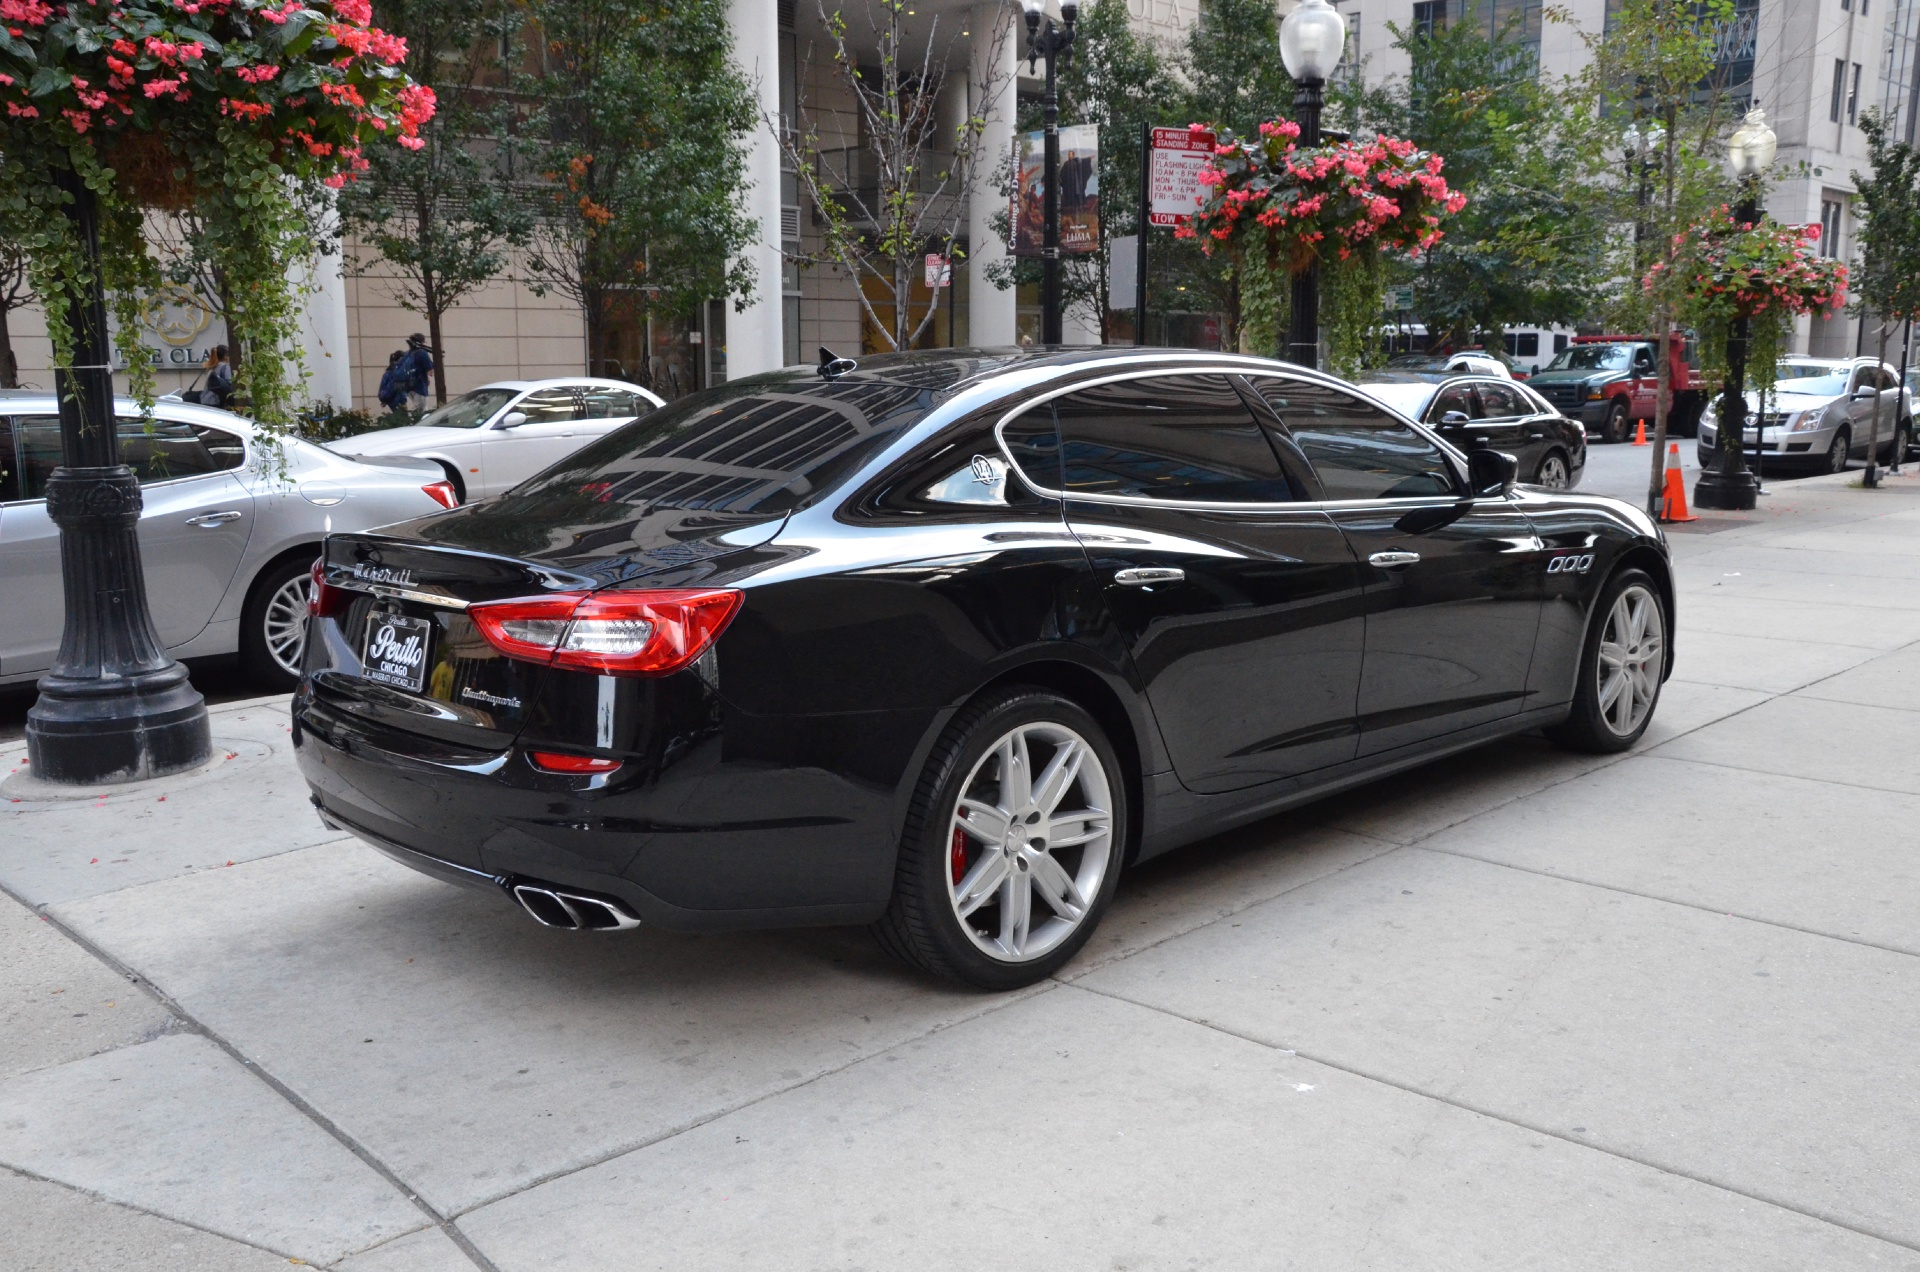 2014 maserati quattroporte gts sport gt s stock r158b s for sale near chicago il il. Black Bedroom Furniture Sets. Home Design Ideas